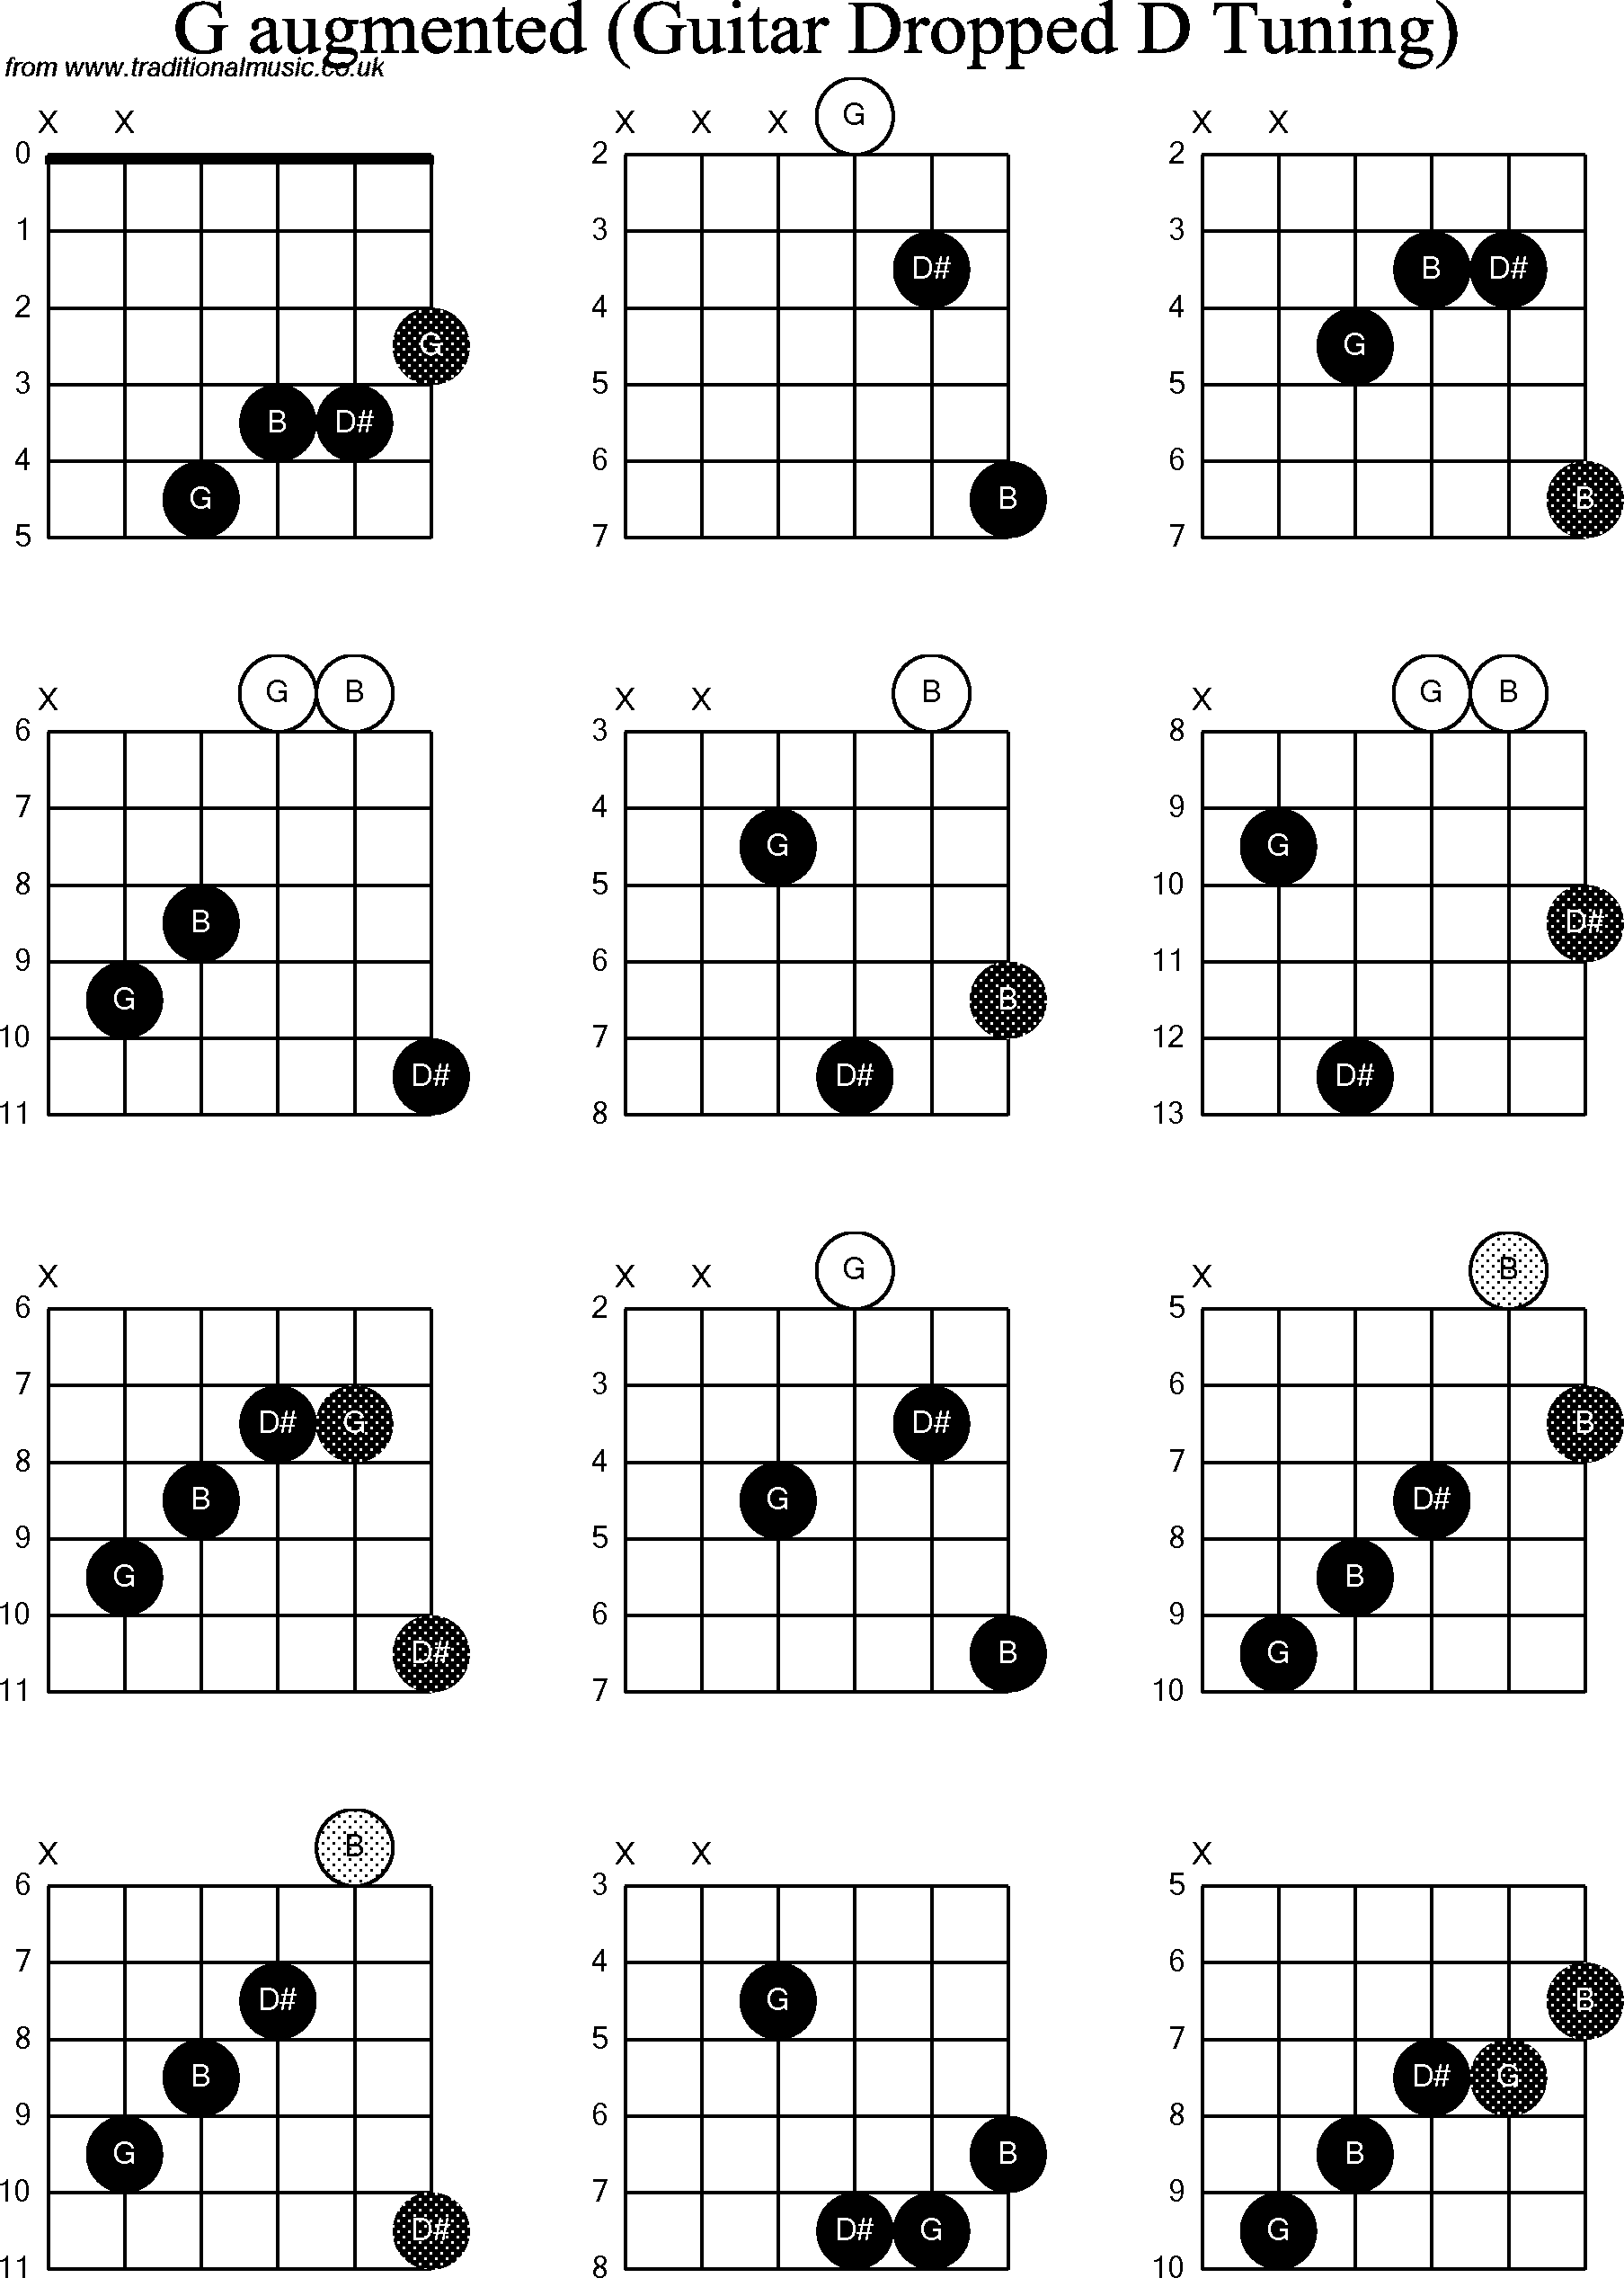 Chord diagrams for Dropped D Guitar(DADGBE), G Augmented